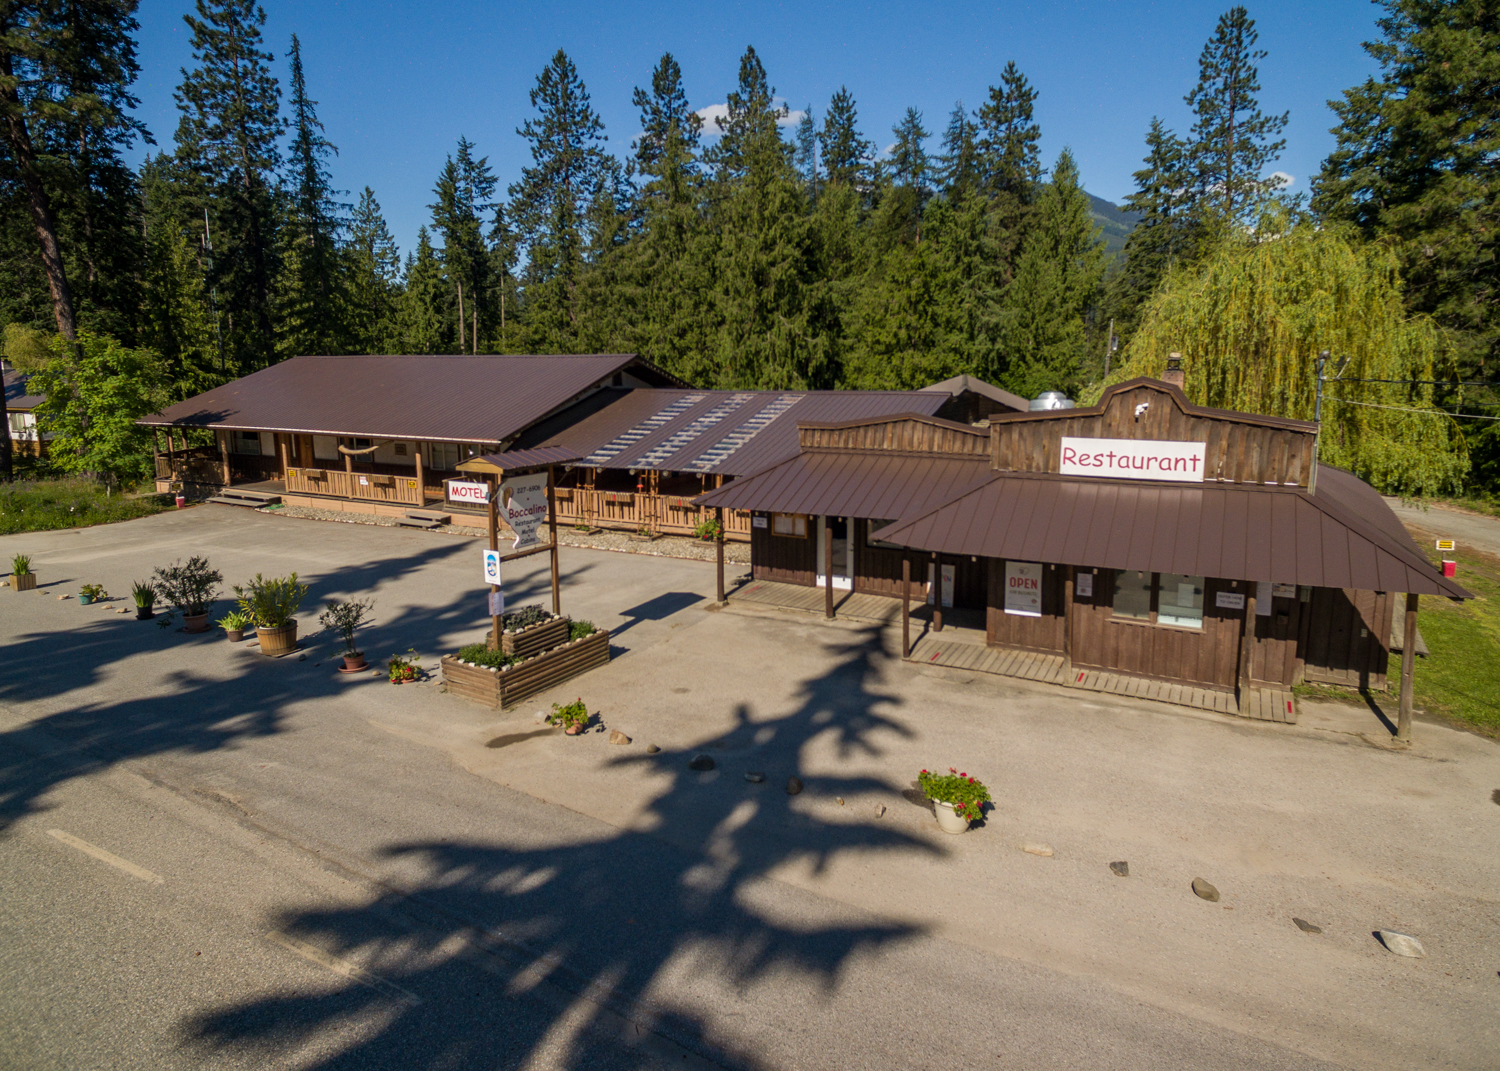 Boccalino Restaurant Cabins Motel is a business for sale in BC.